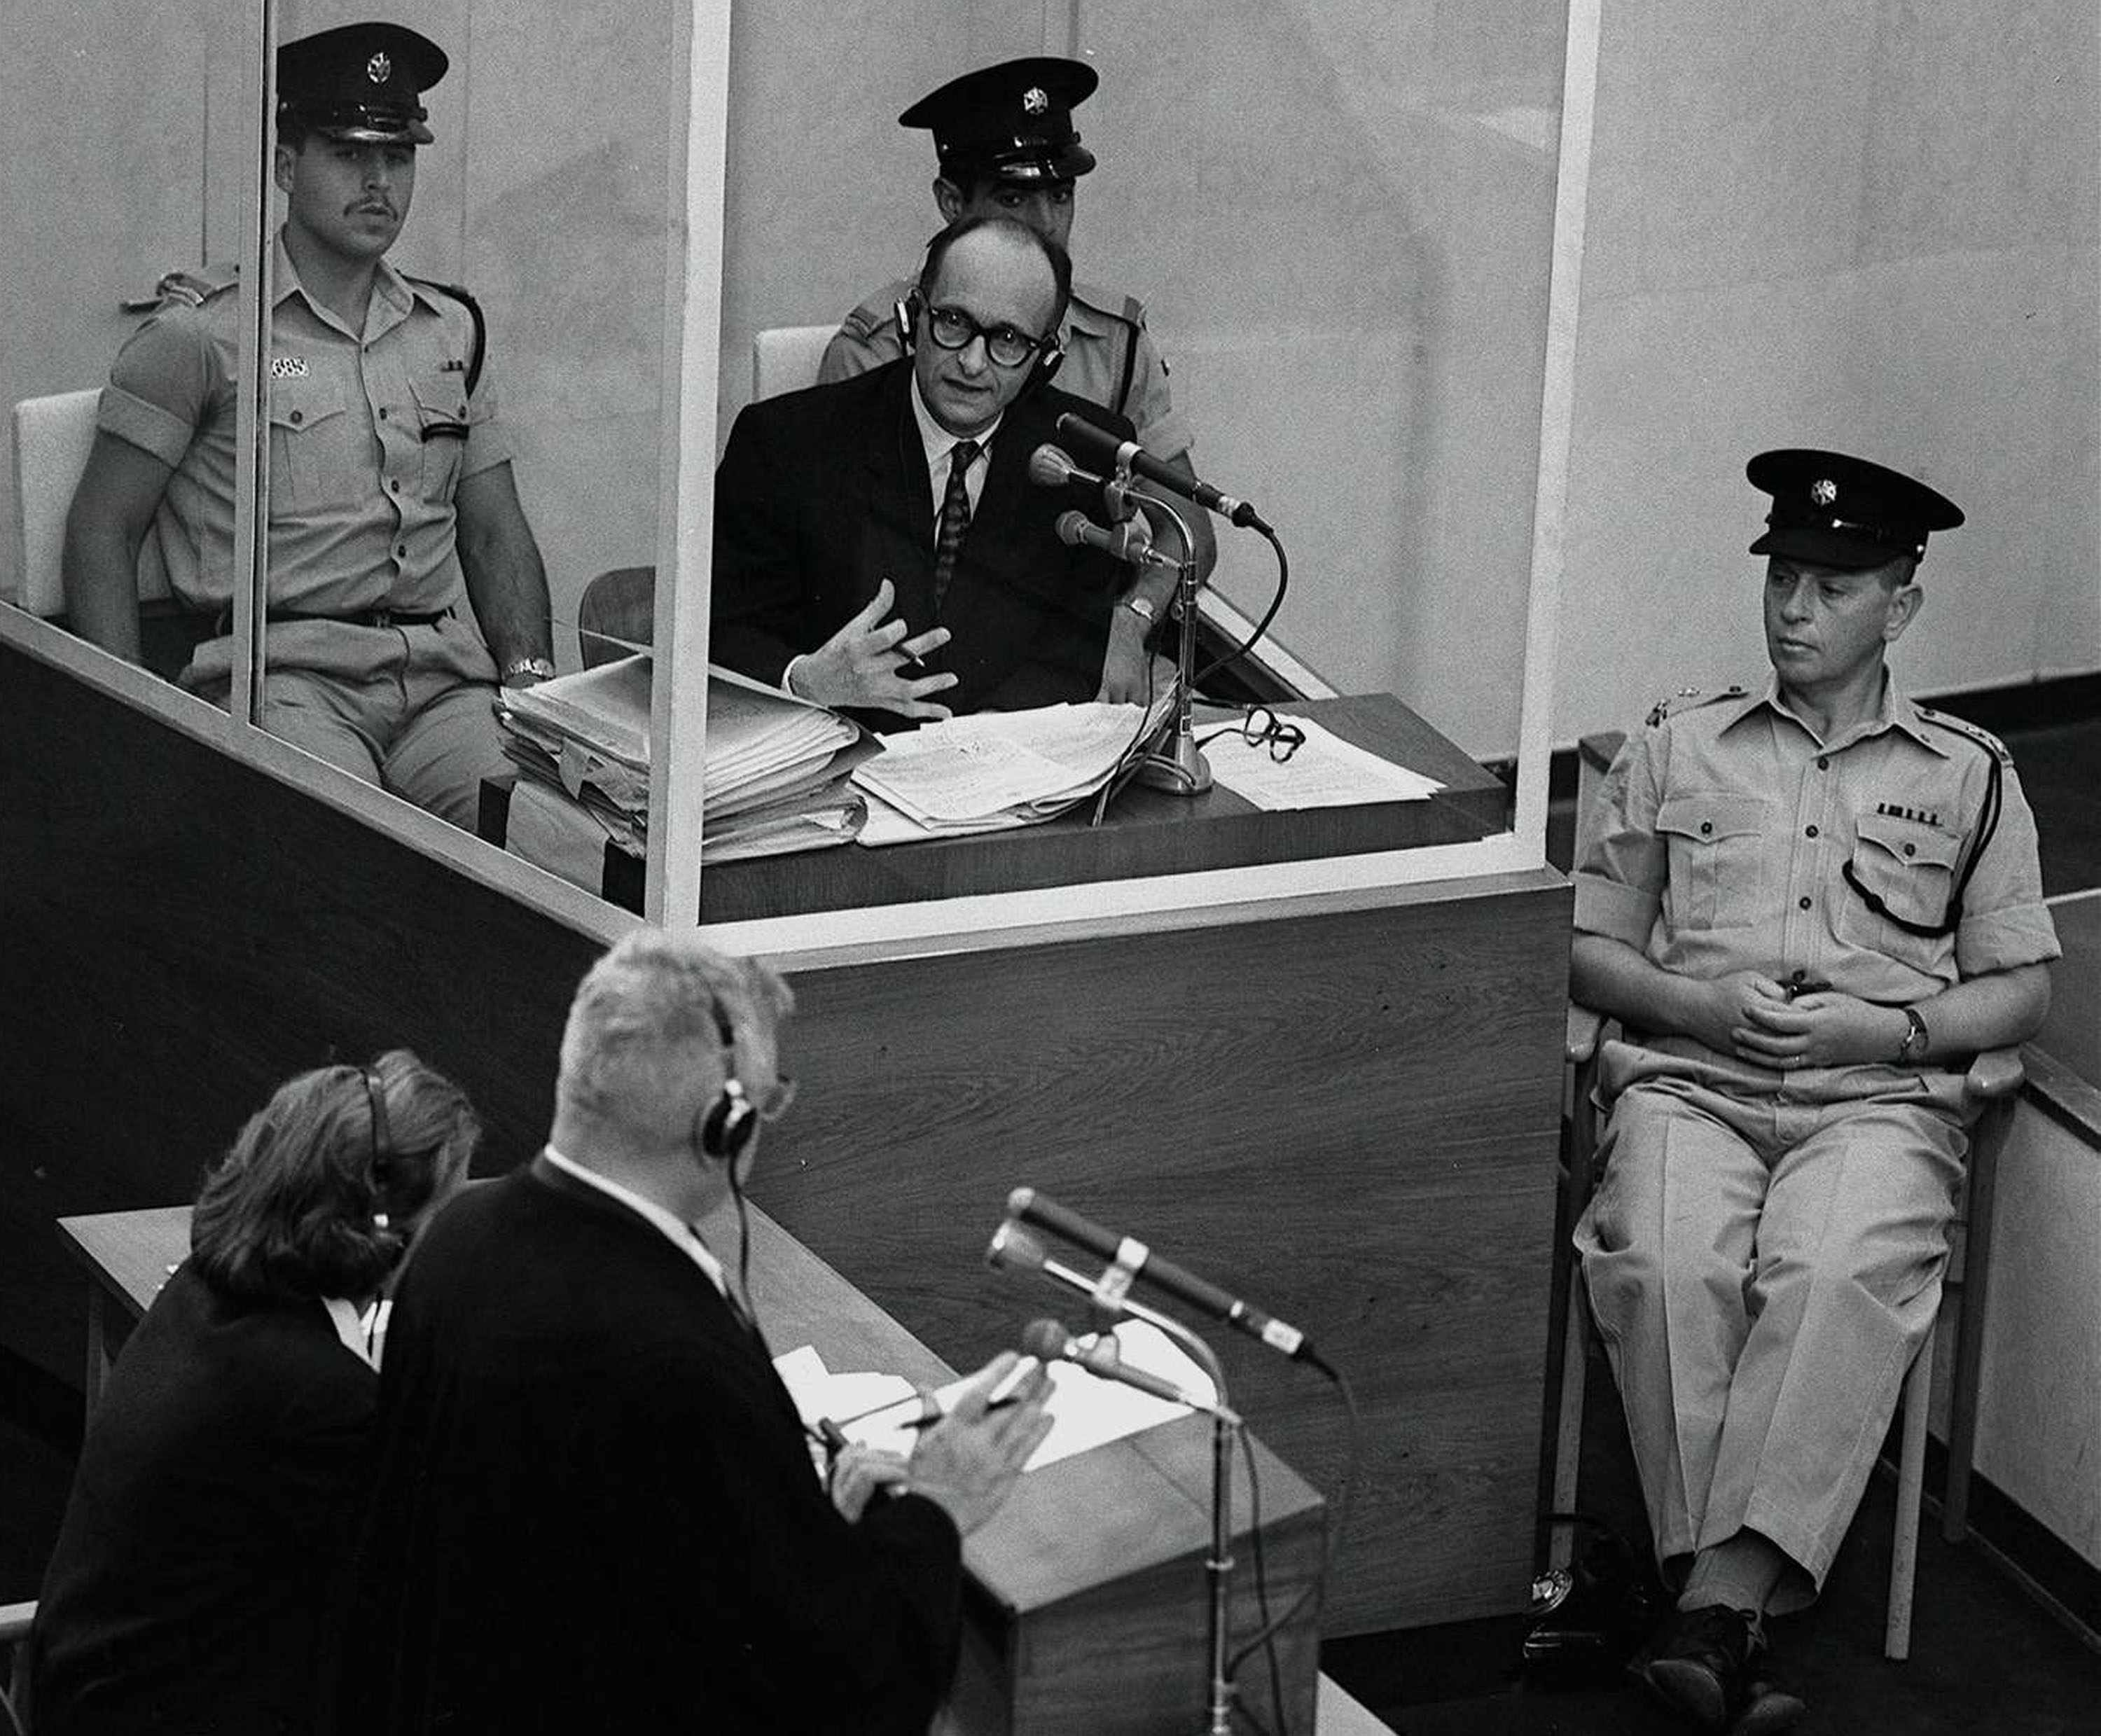 Adolf Eichmann during his trial in 1961